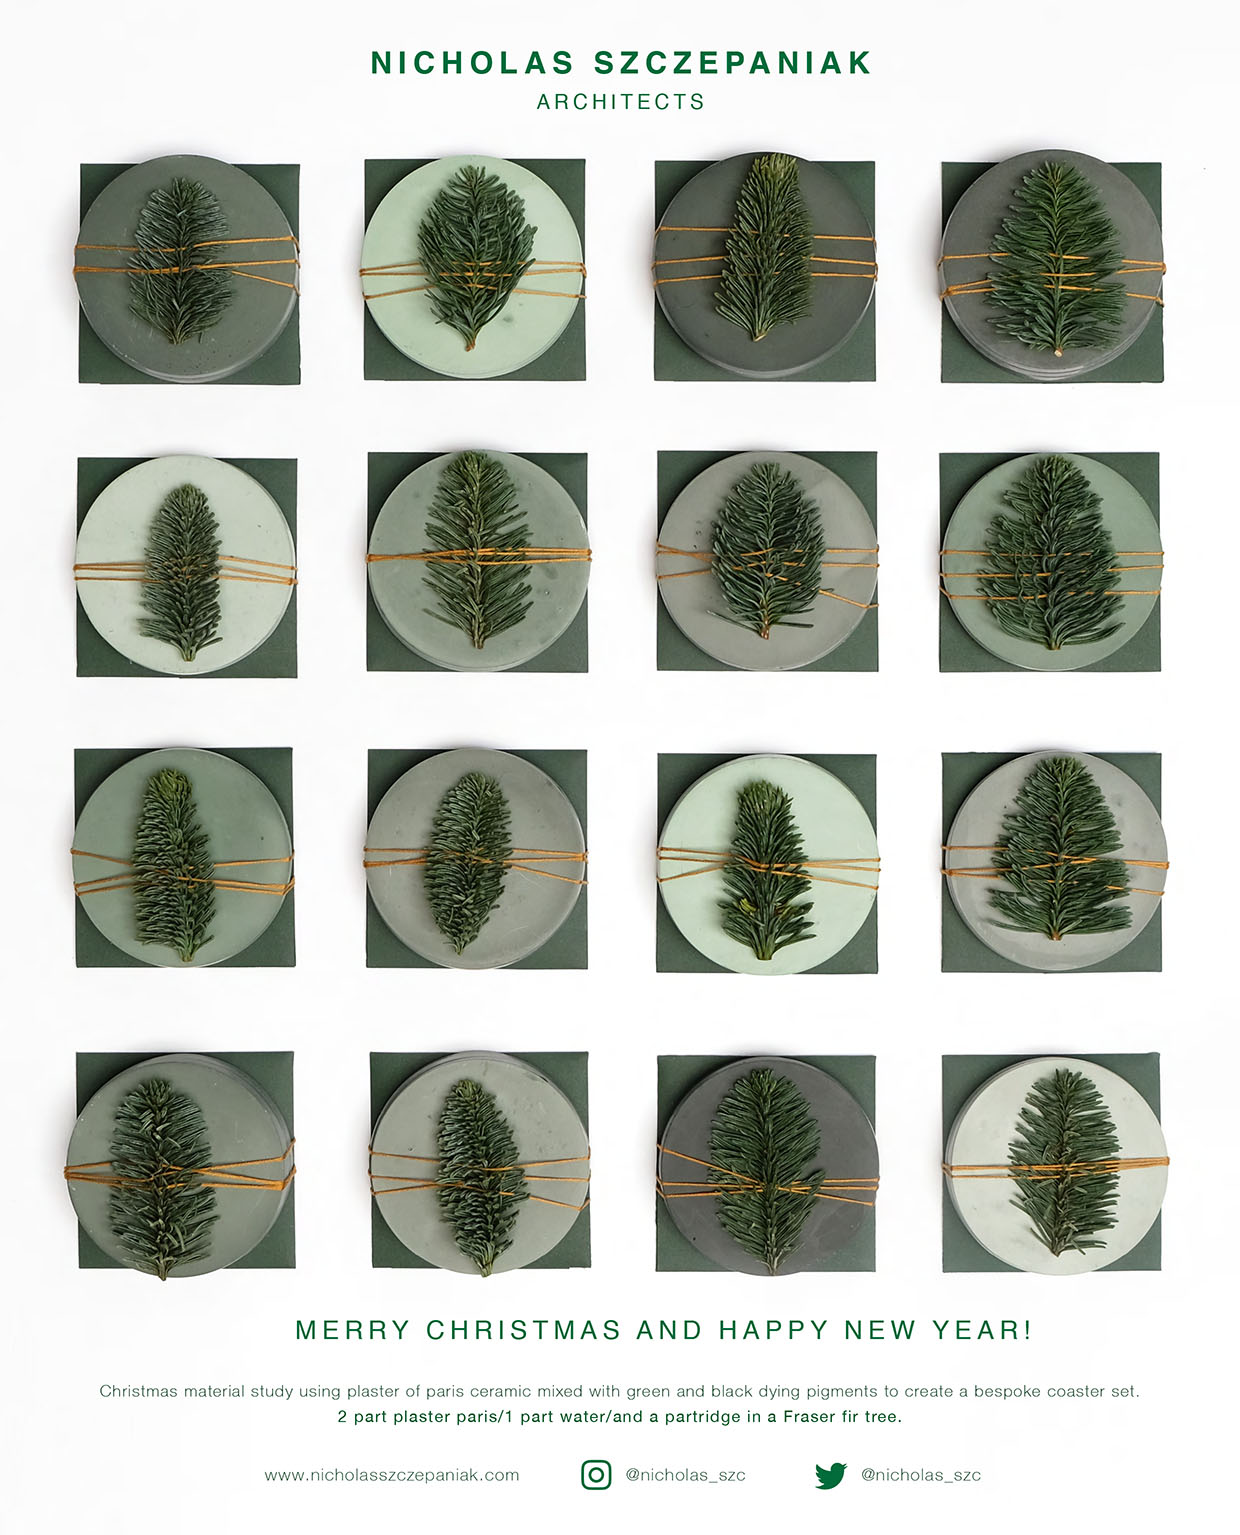 NEWS  Merry Christmas from Nicholas Szczepaniak Architects!